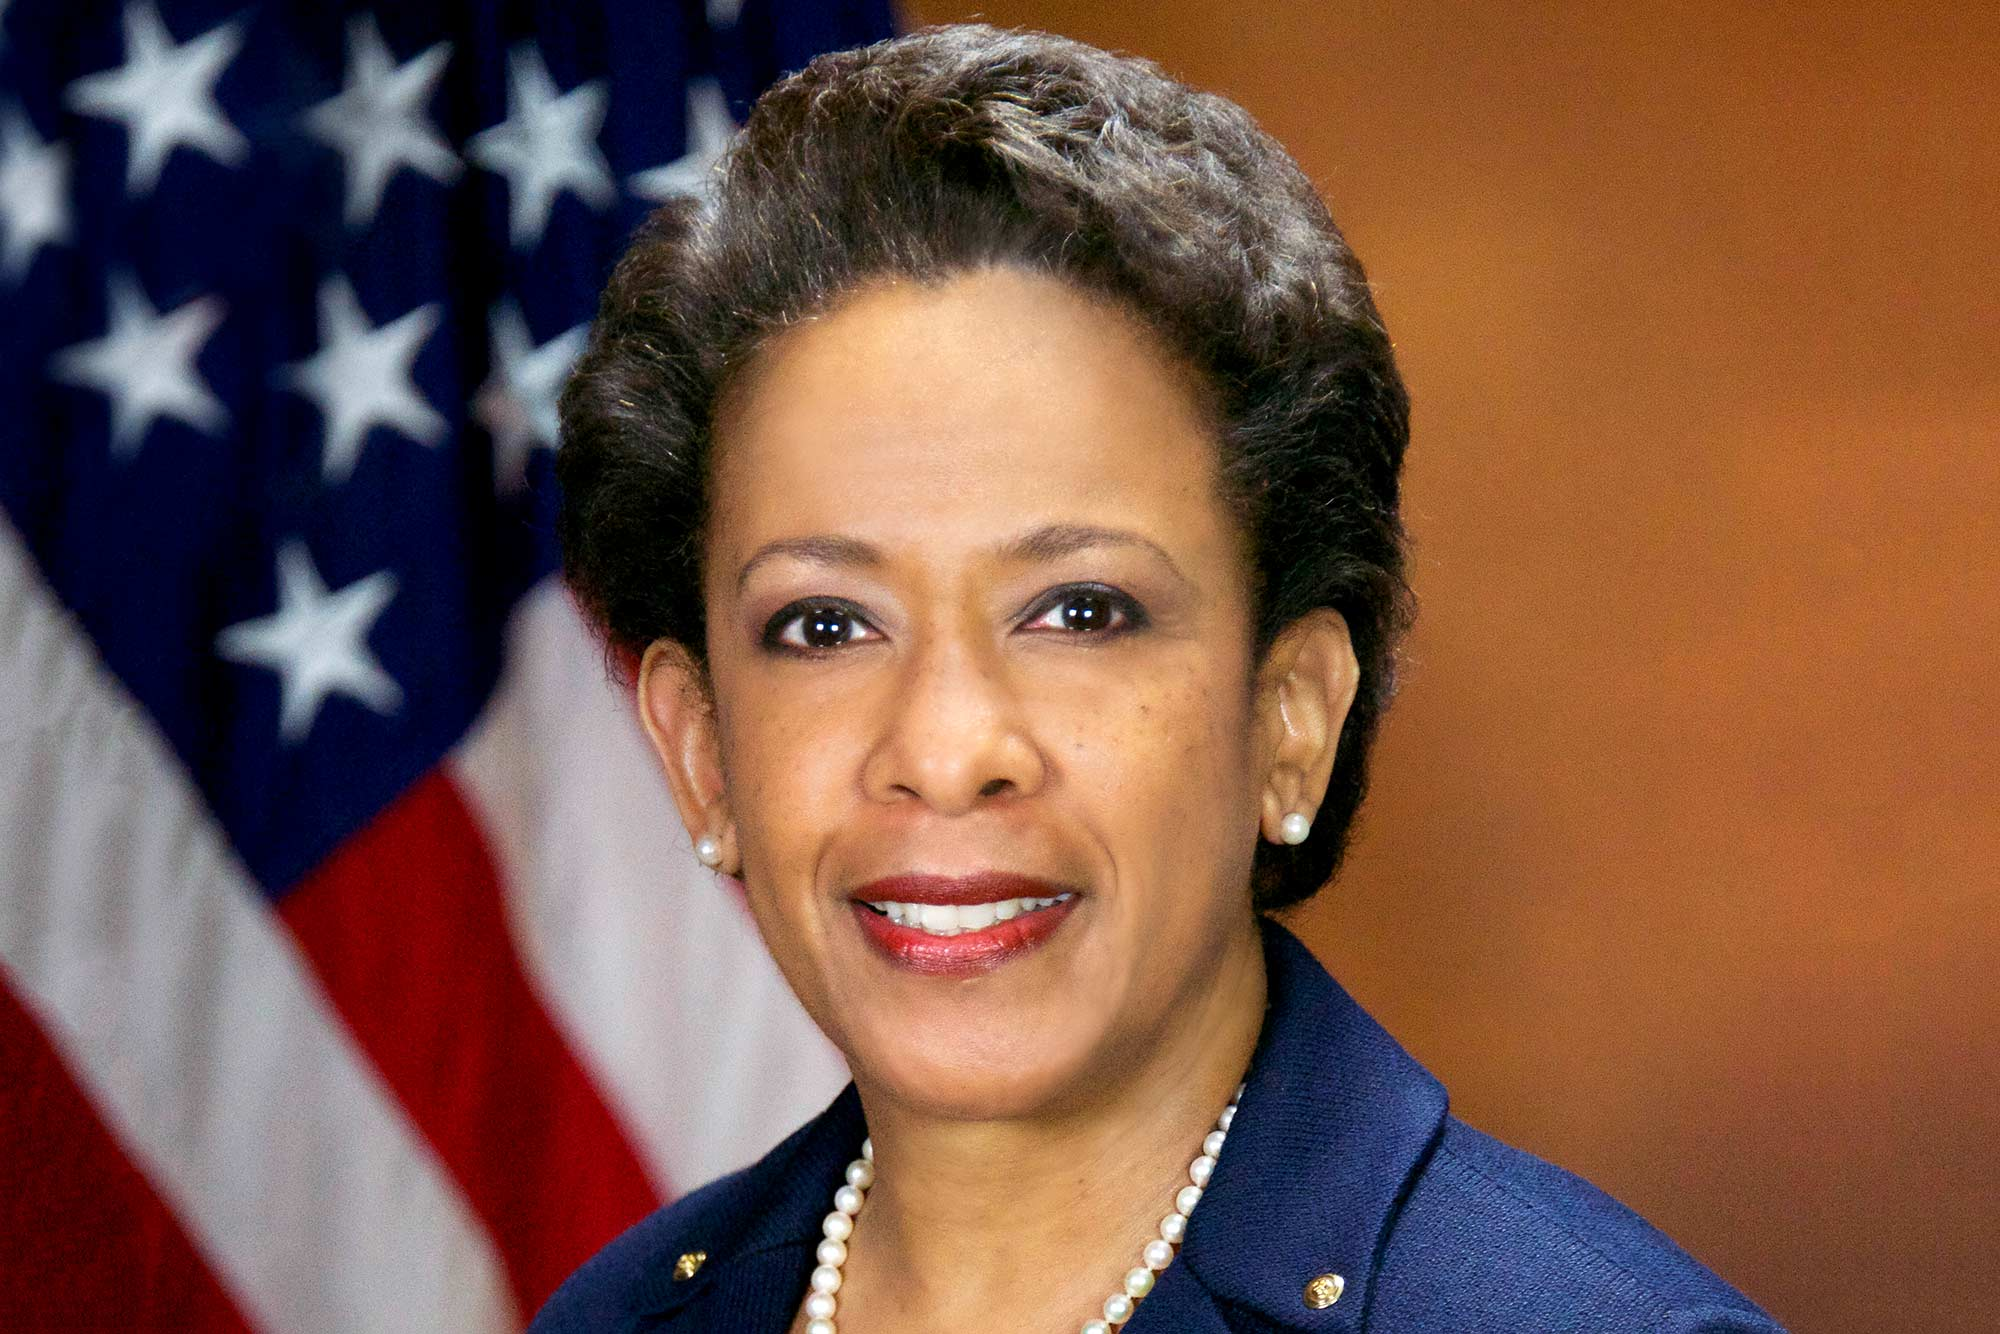 Loretta Lynch served as the 83rd attorney general of the United States.